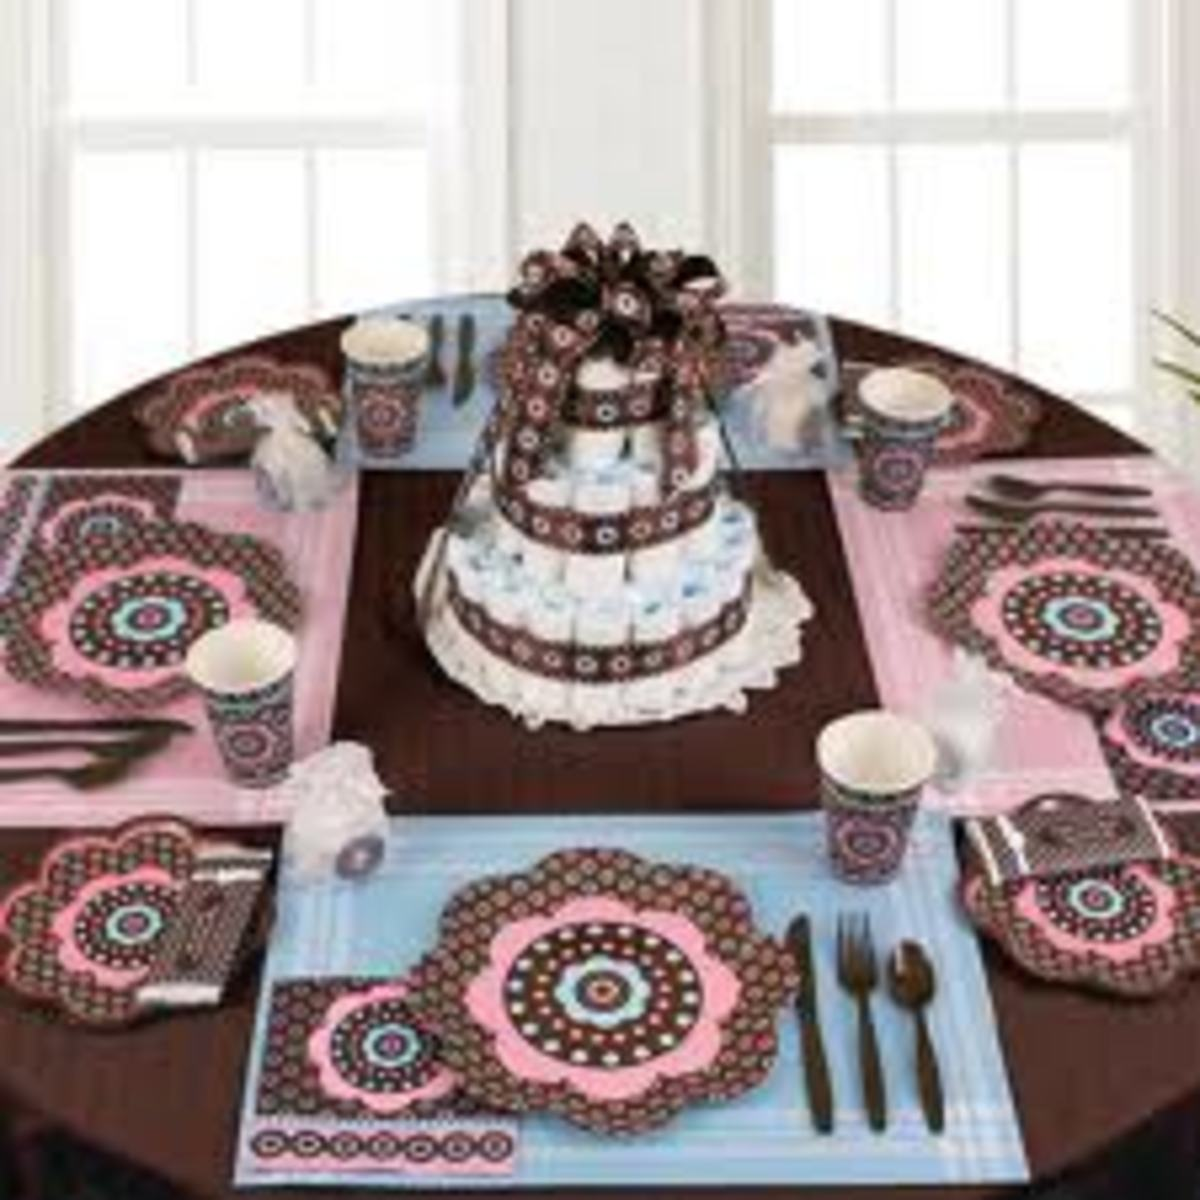 This table piece used both traditional blue and pink with a shade of brown. Notice how everything matches. It is important to use the same color scheme when decorating. It shows order and structure at your shower.